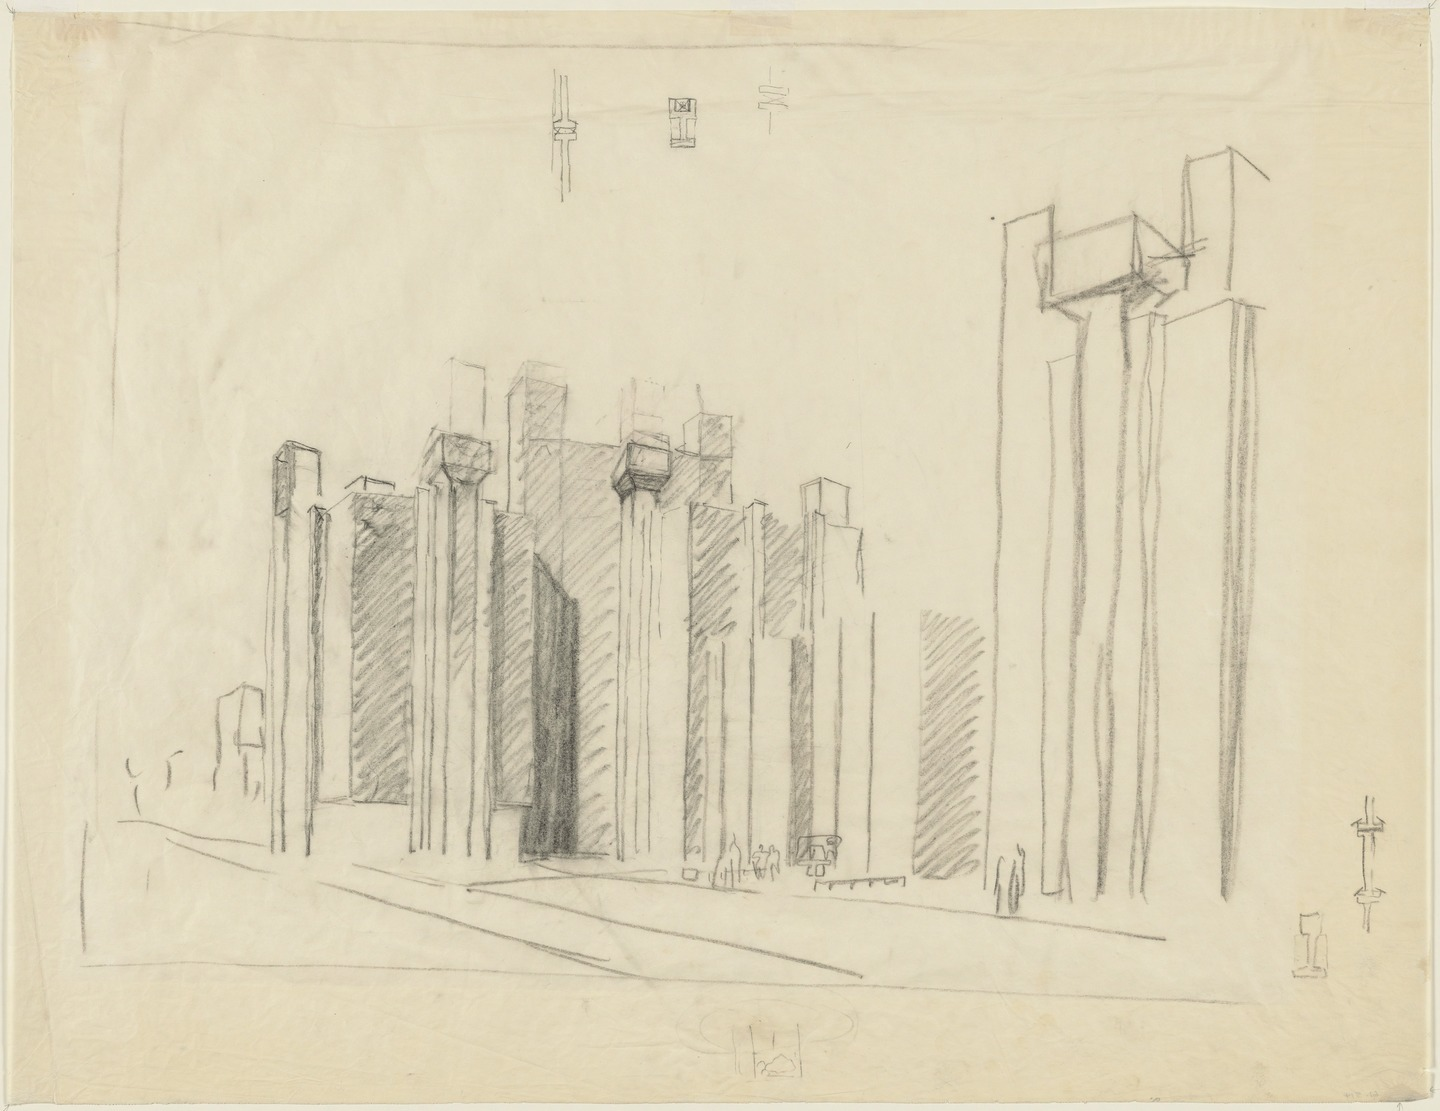 Architectural drawing by Louis I. Kahn: Alfred Newton Richards Medical Research Building and Biology Building, University of Pennsylvania, Philadelphia, PA, Preliminary Version: Perspective, charcoal on tracing paper, 606×787 mm, 1957 (New York, Museum of Modern Art); courtesy of The Museum of Modern Art, New York